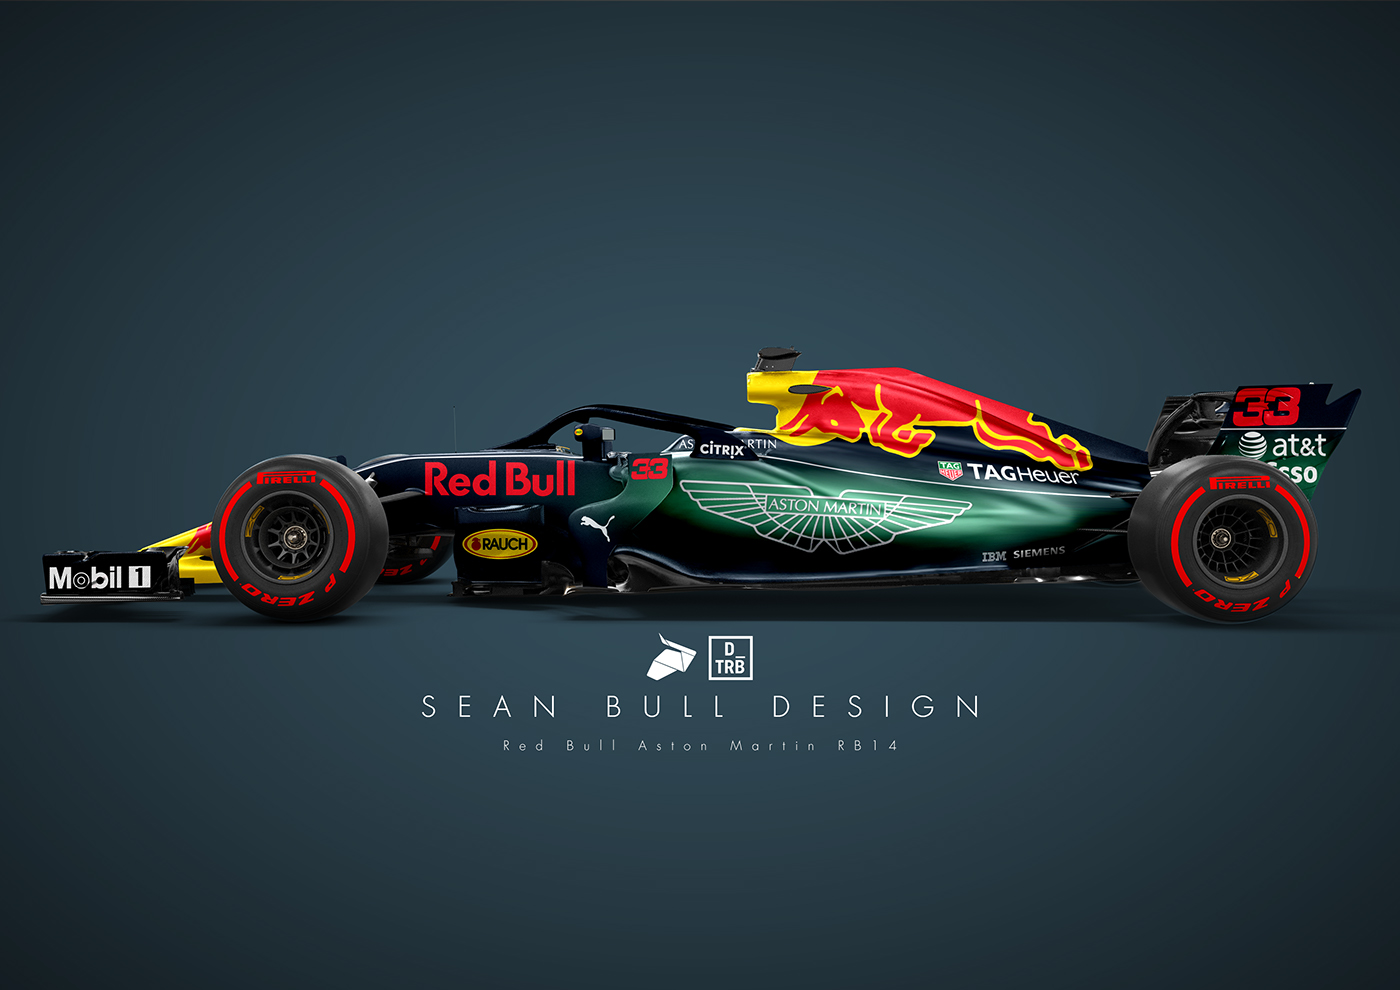 Aston Martin Red Bull Rb14 Livery Concept On Behance